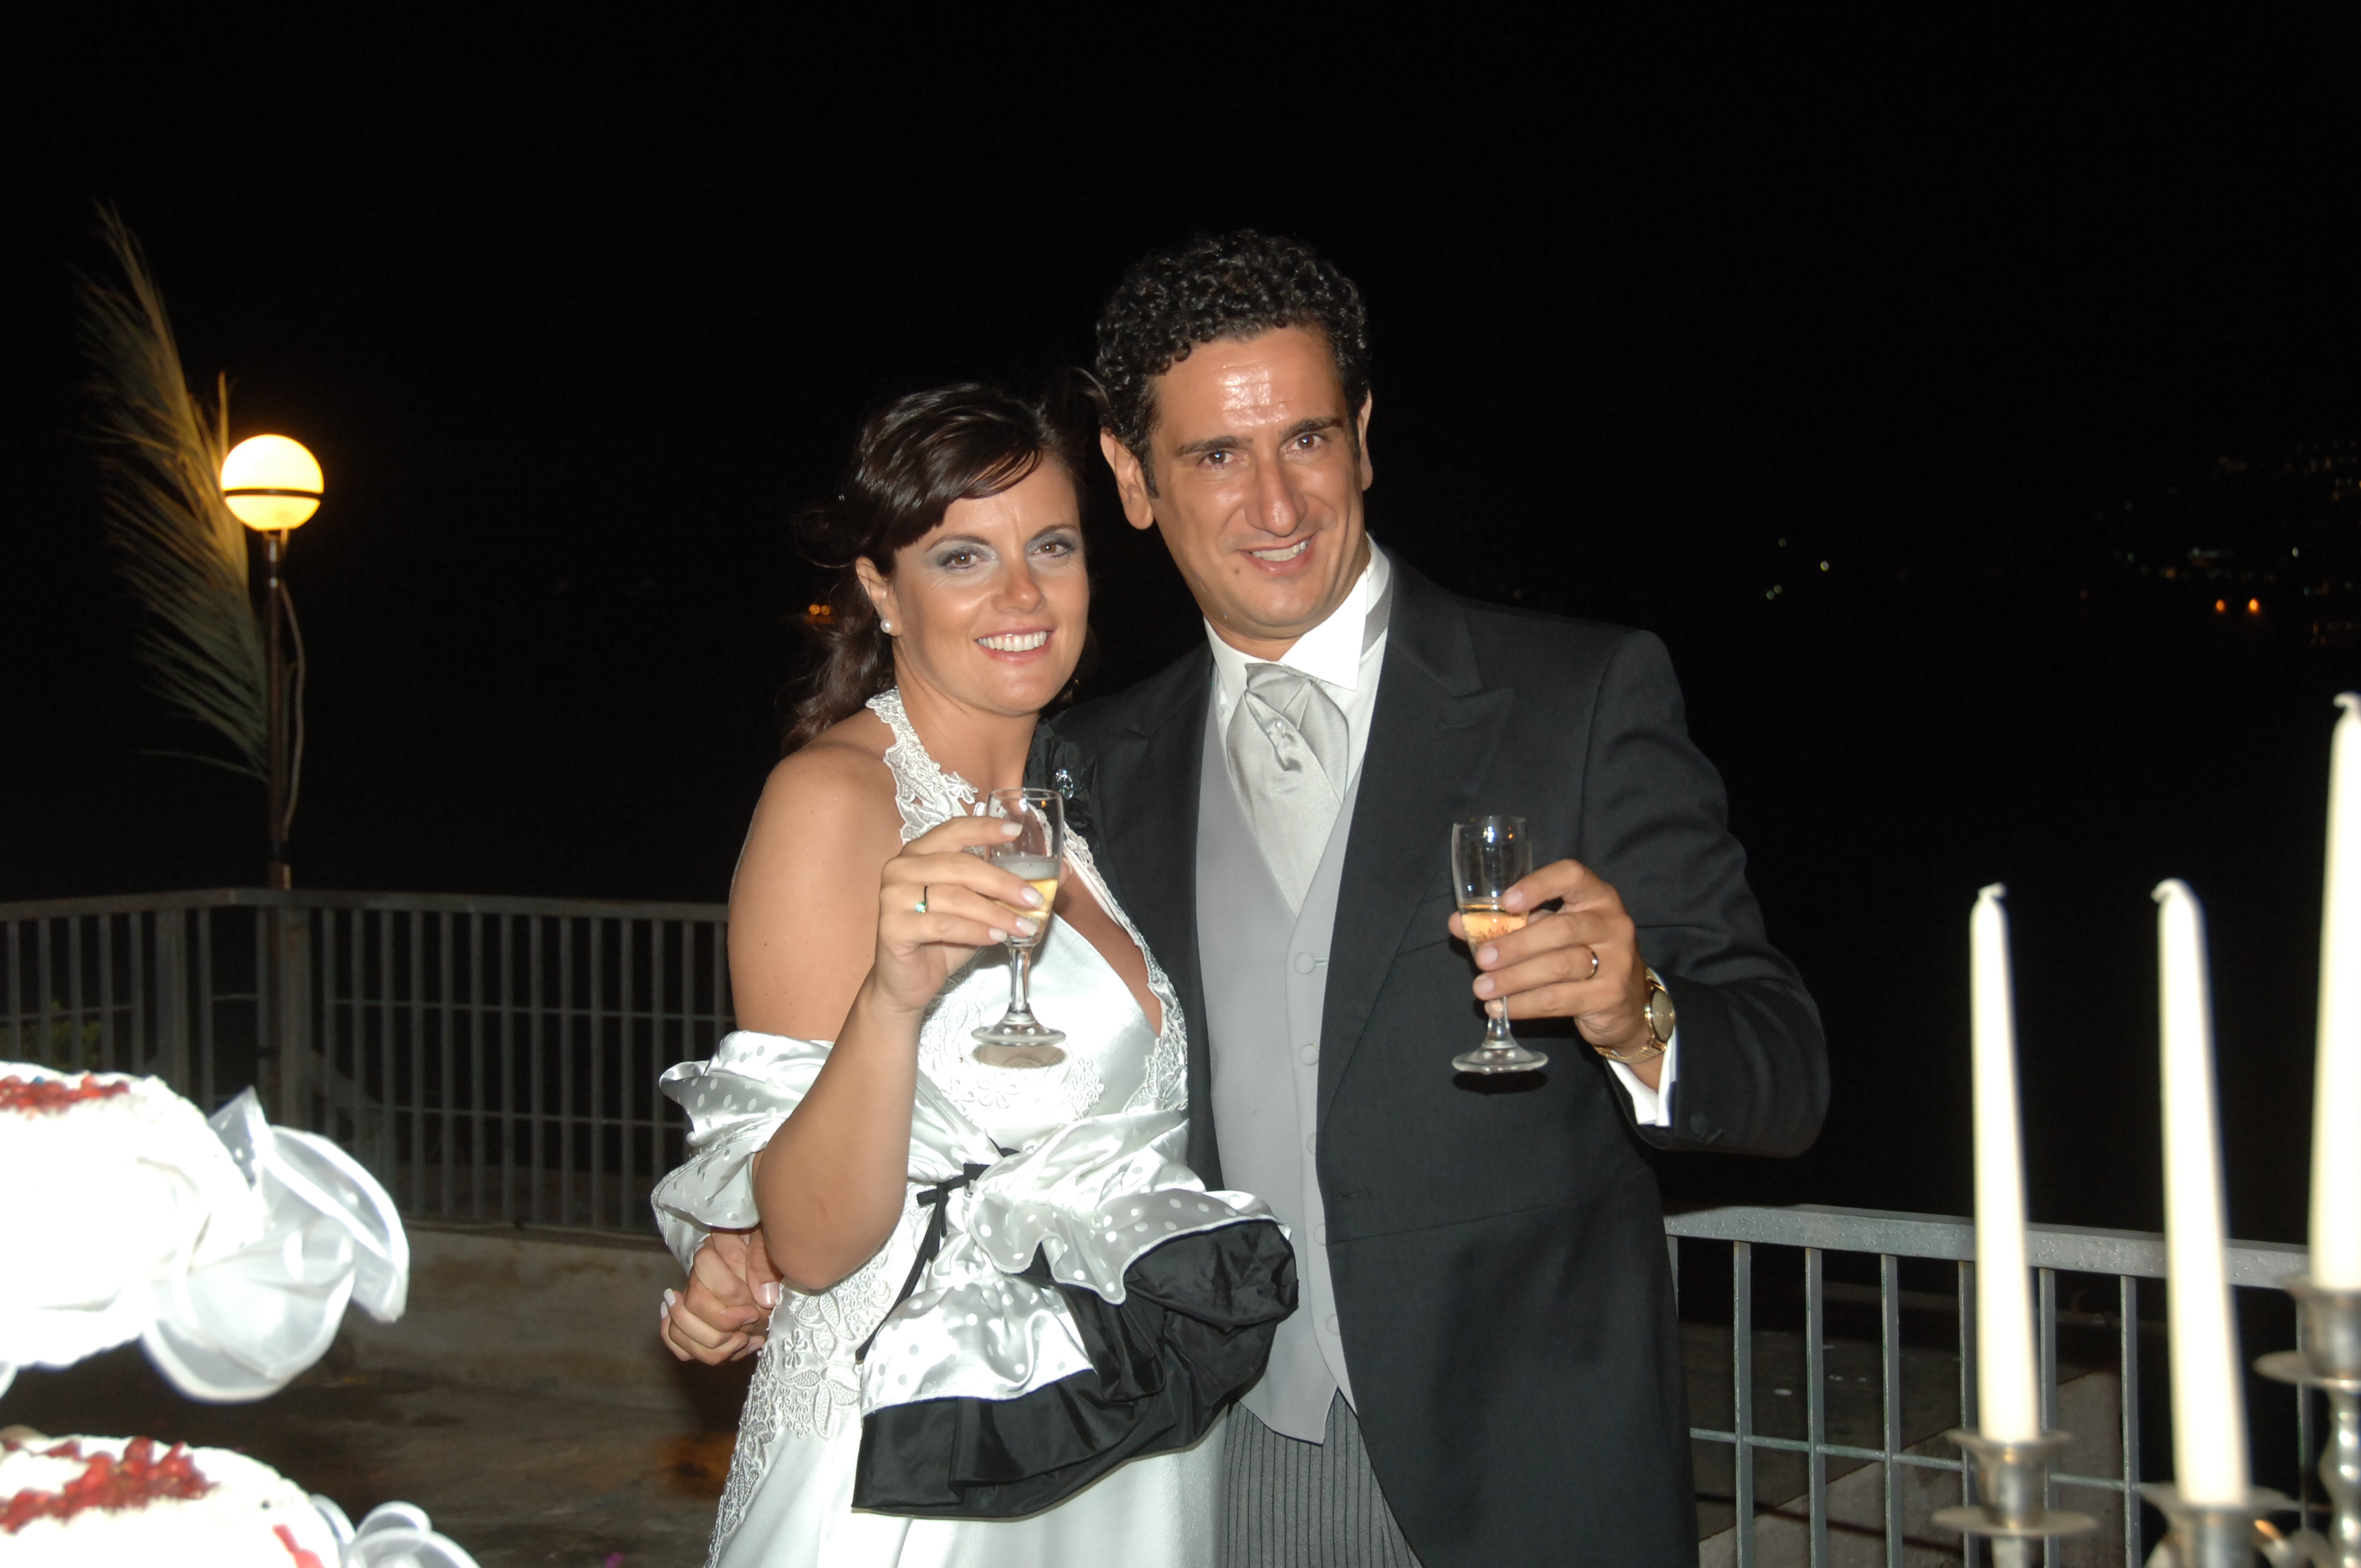 http://www.weddingamalfi.com/wp-content/uploads/Enza-and-Mario-champagne-toast.jpg